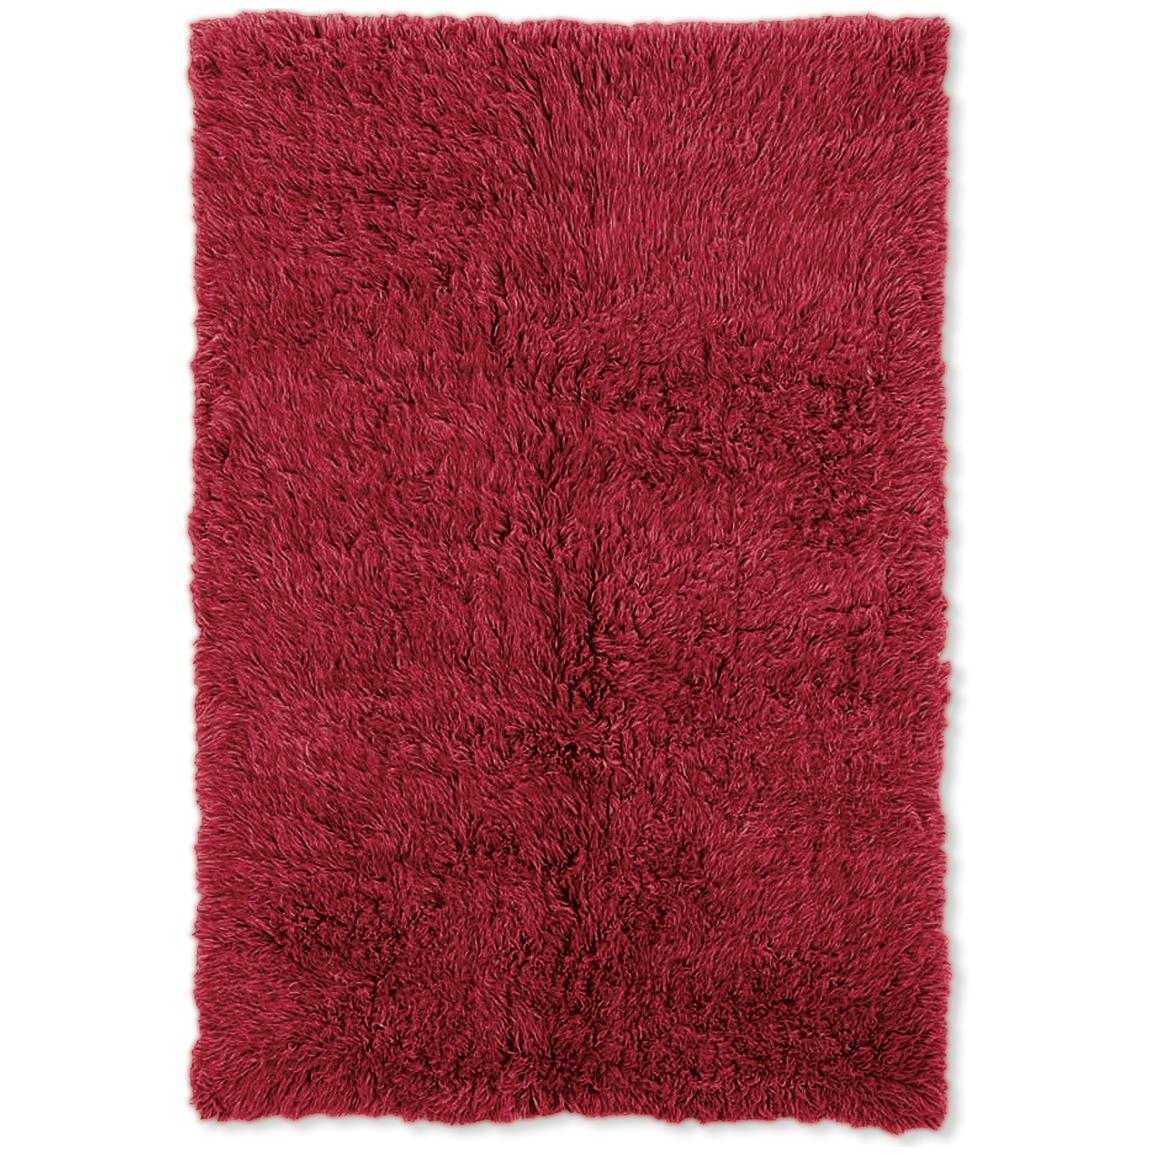 Linon Home Decor, Inc. Flokati Collection Rug, Red